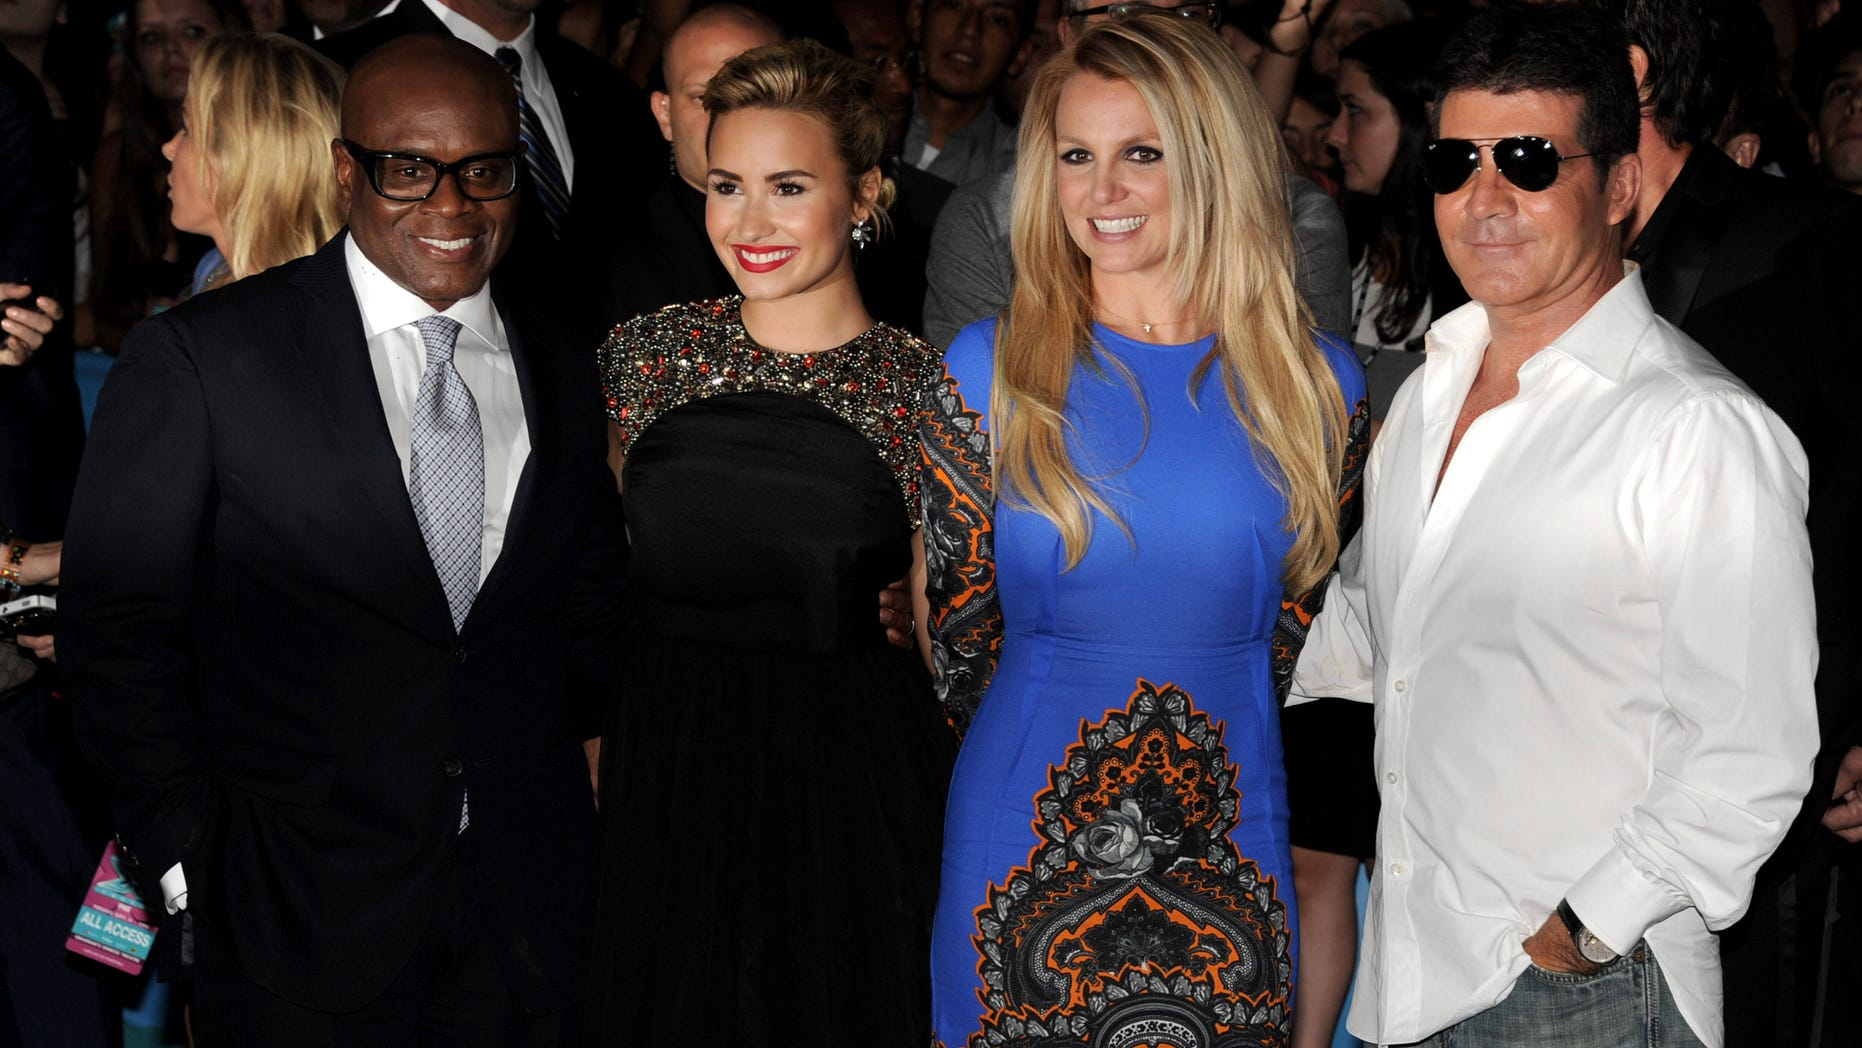 """LOS ANGELES, CA - SEPTEMBER 11:  The X Factor judges (L-R) L.A. Reid, Demi Lovato, Britney Spears and Simon Cowell pose at the premiere of Fox's """"The X Factor"""" Season 2 and handprint ceremony at the Chinese Theatre on September 11, 2012 in Los Angeles, California.  (Photo by Kevin Winter/Getty Images)"""